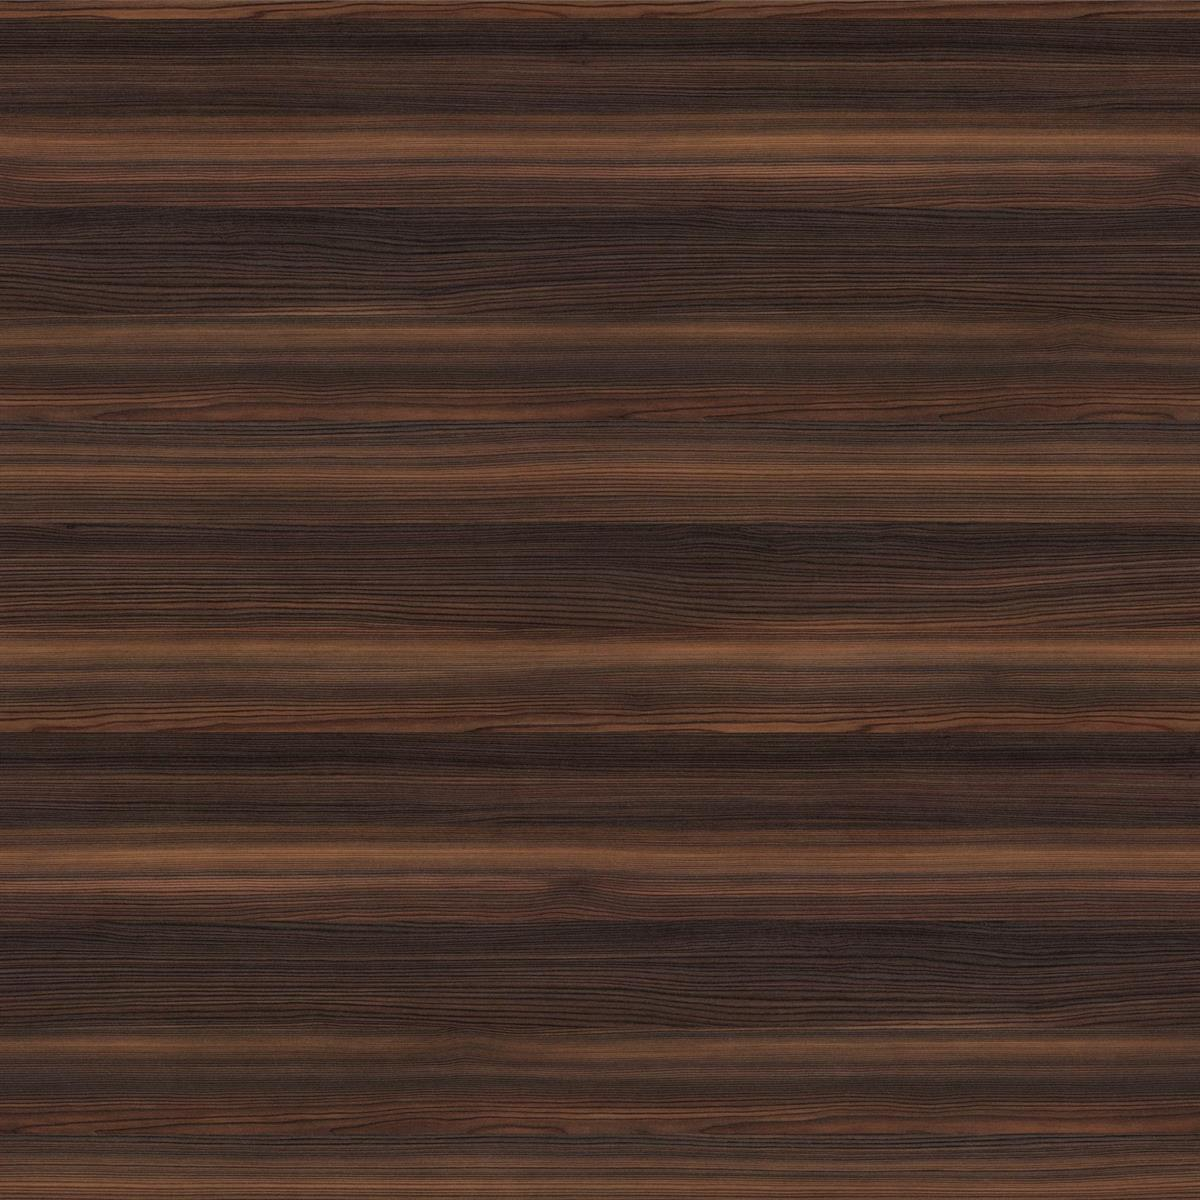 Egger Contemporary Thermo Pine kitchen worktop sample.